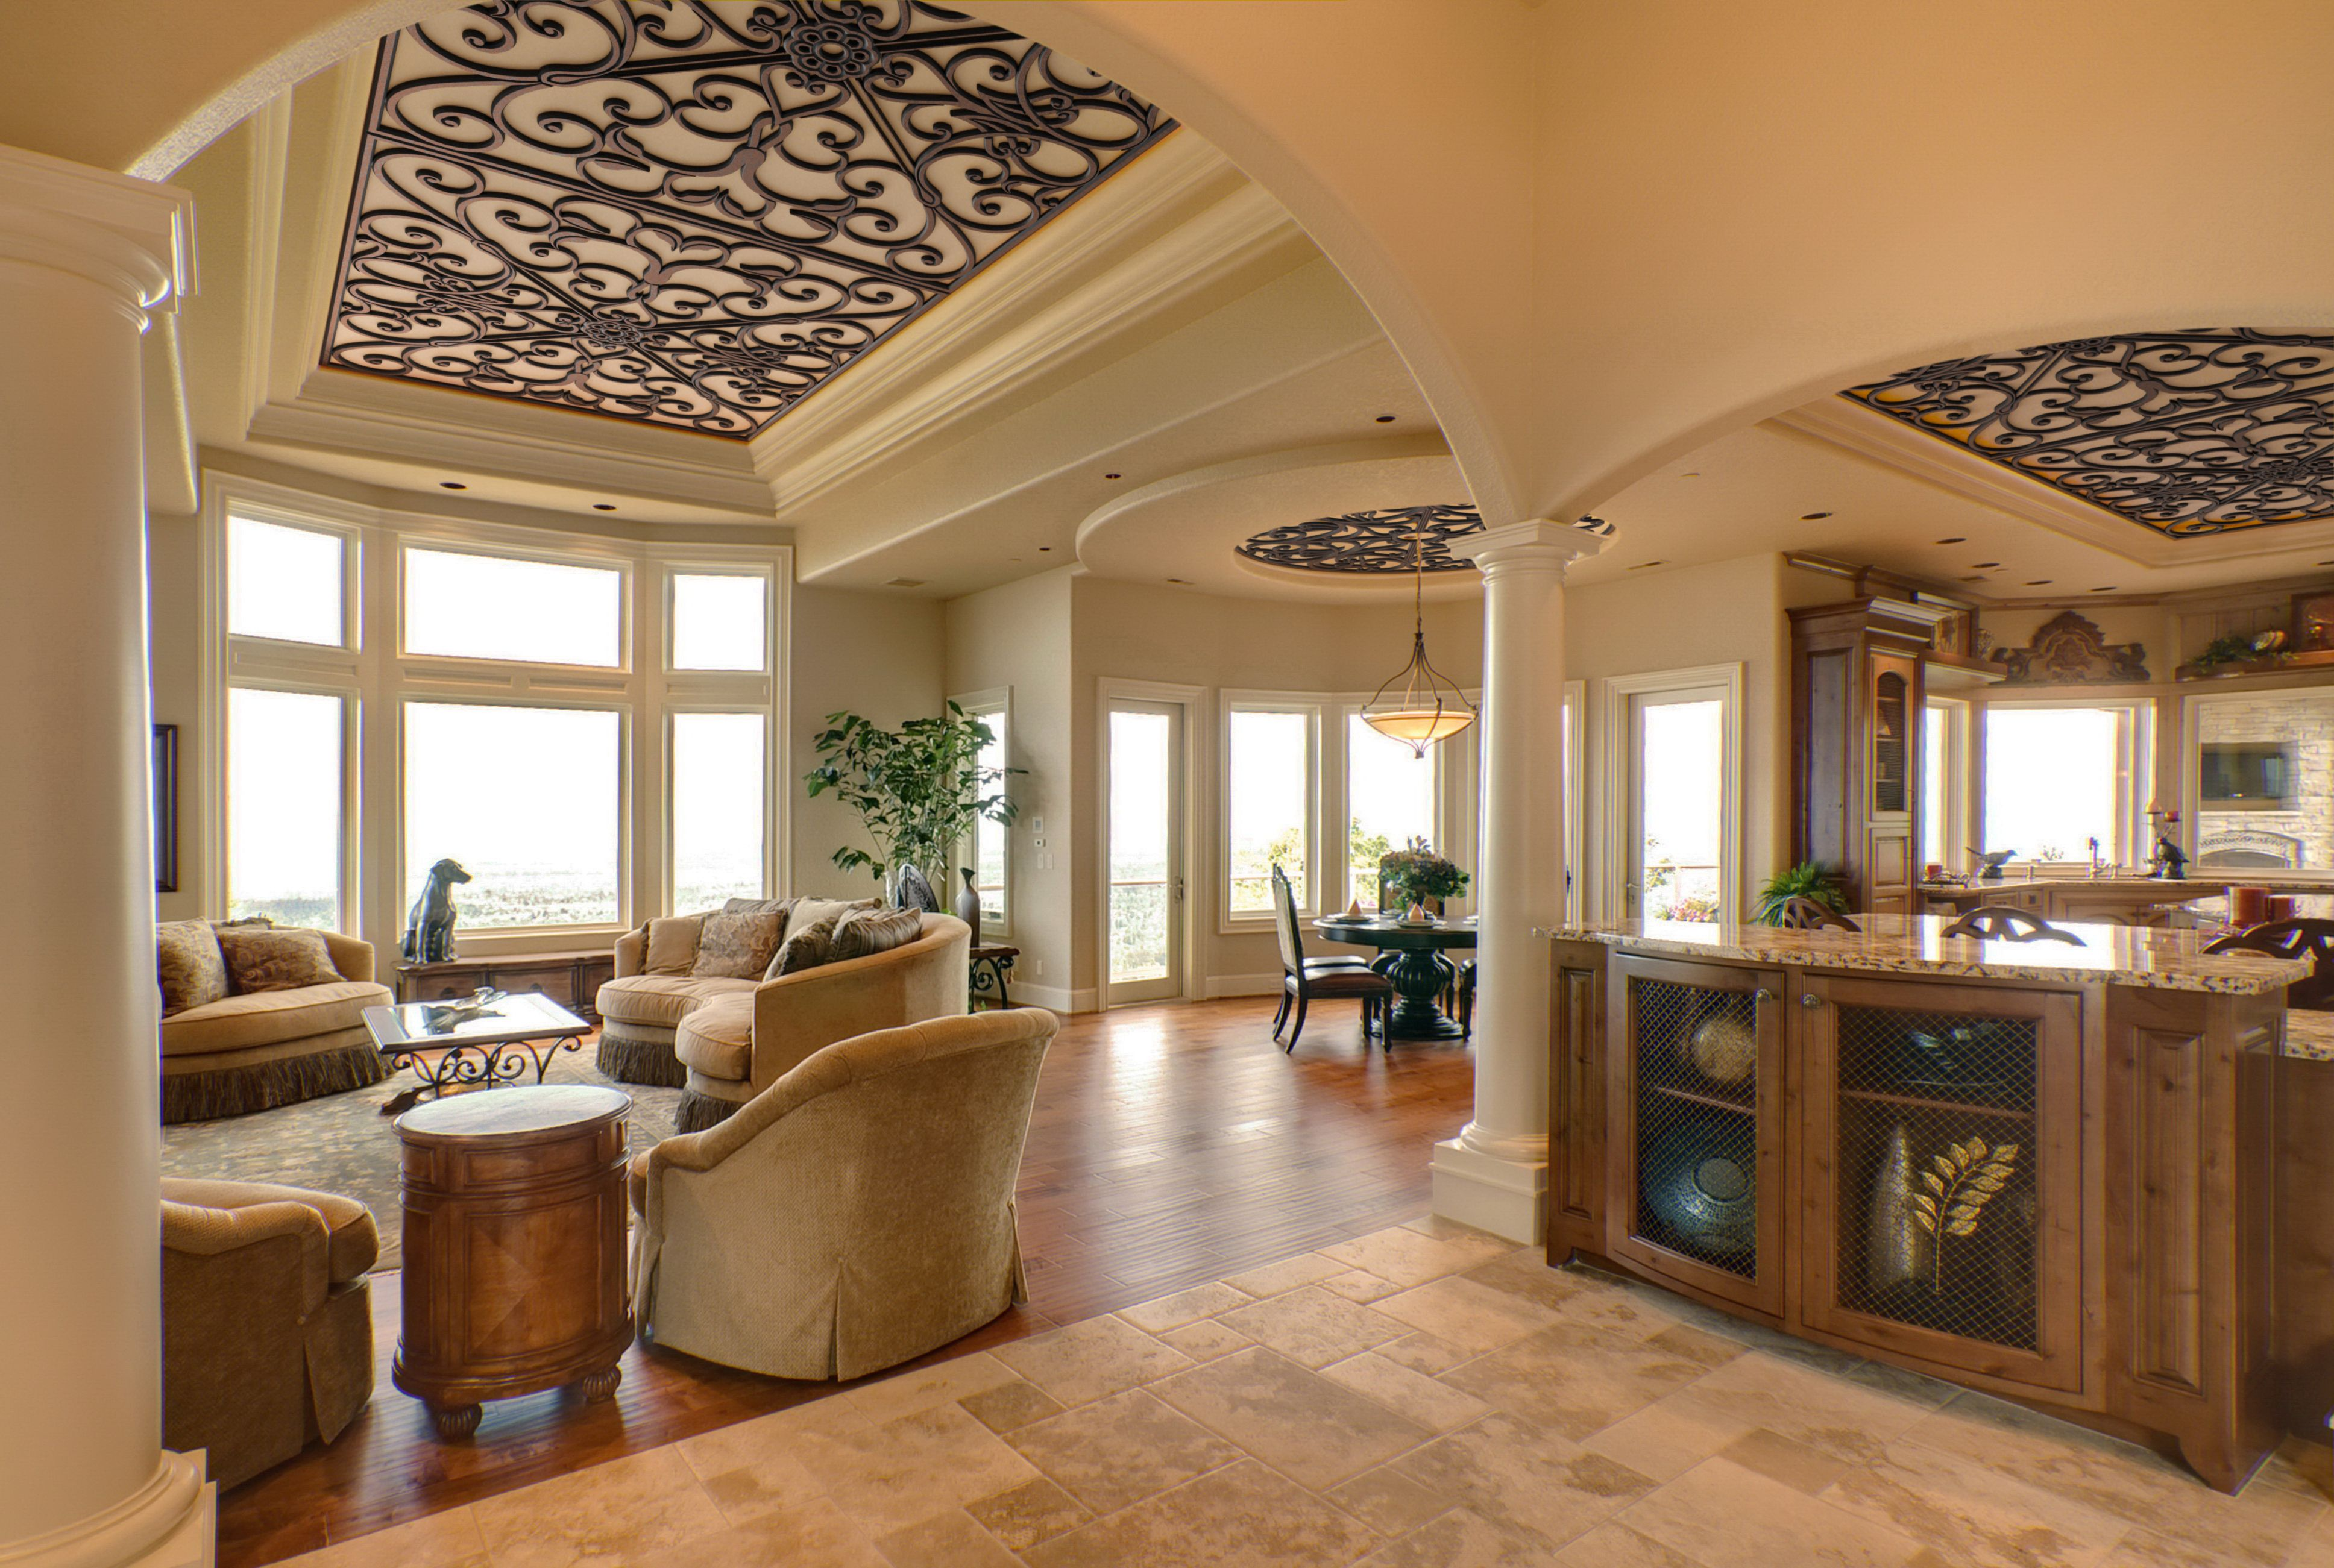 Beautiful Ceiling Treatments from our Faux Iron product